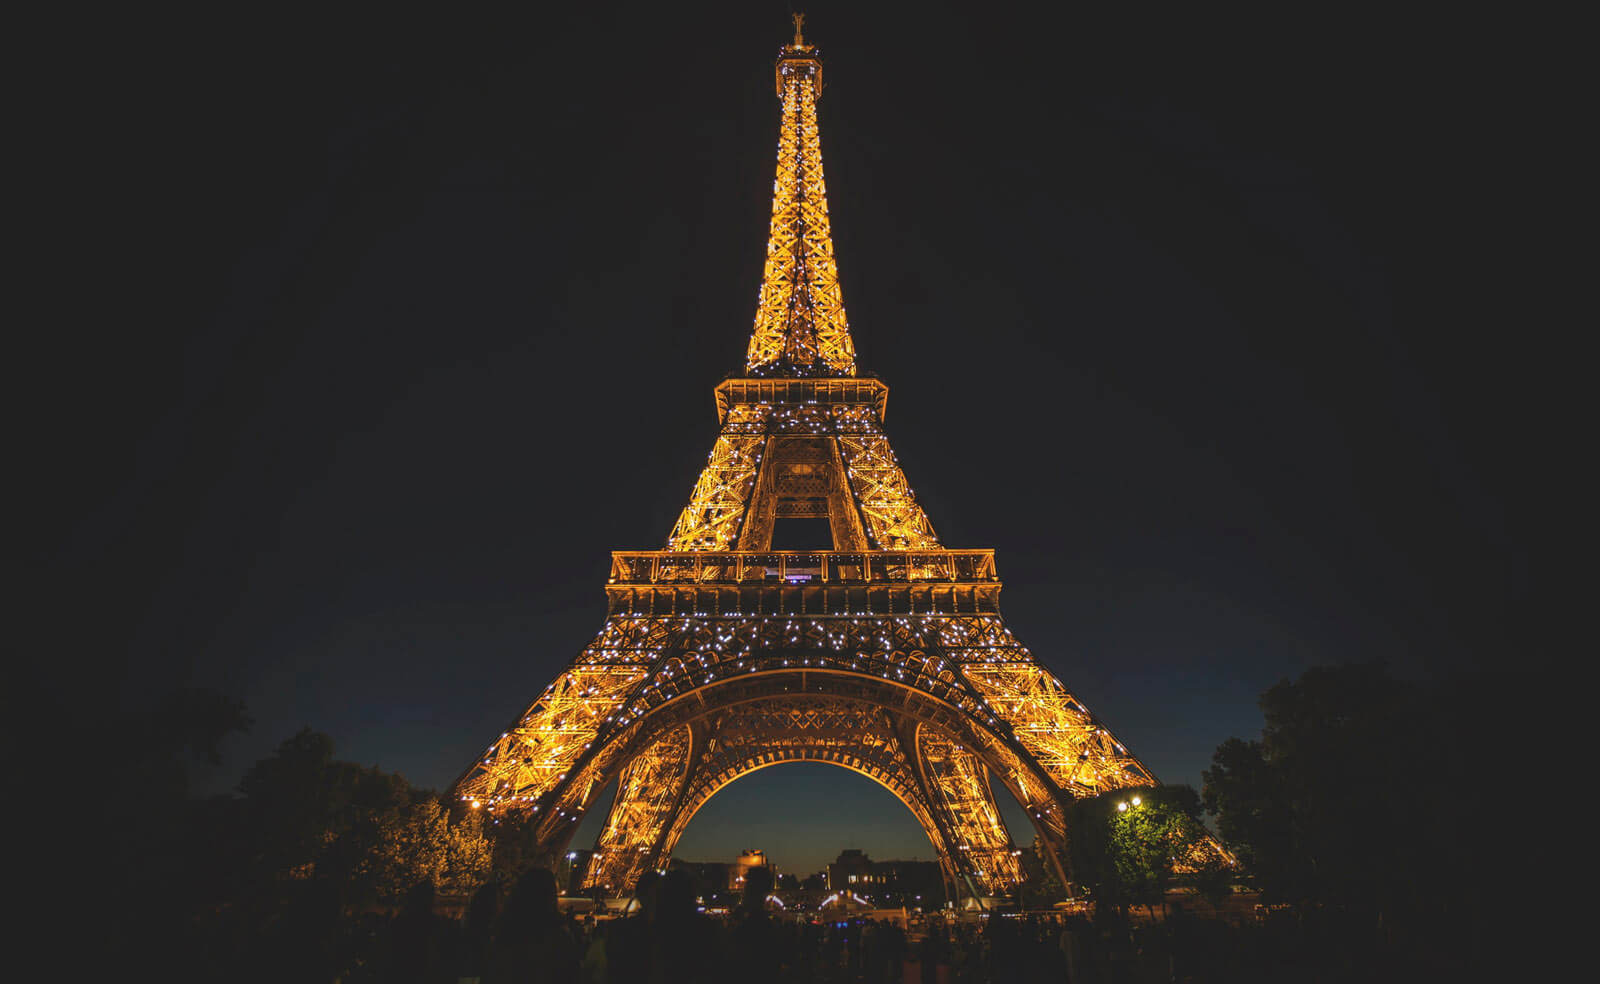 Eiffel Tower by Stephe Leonardi